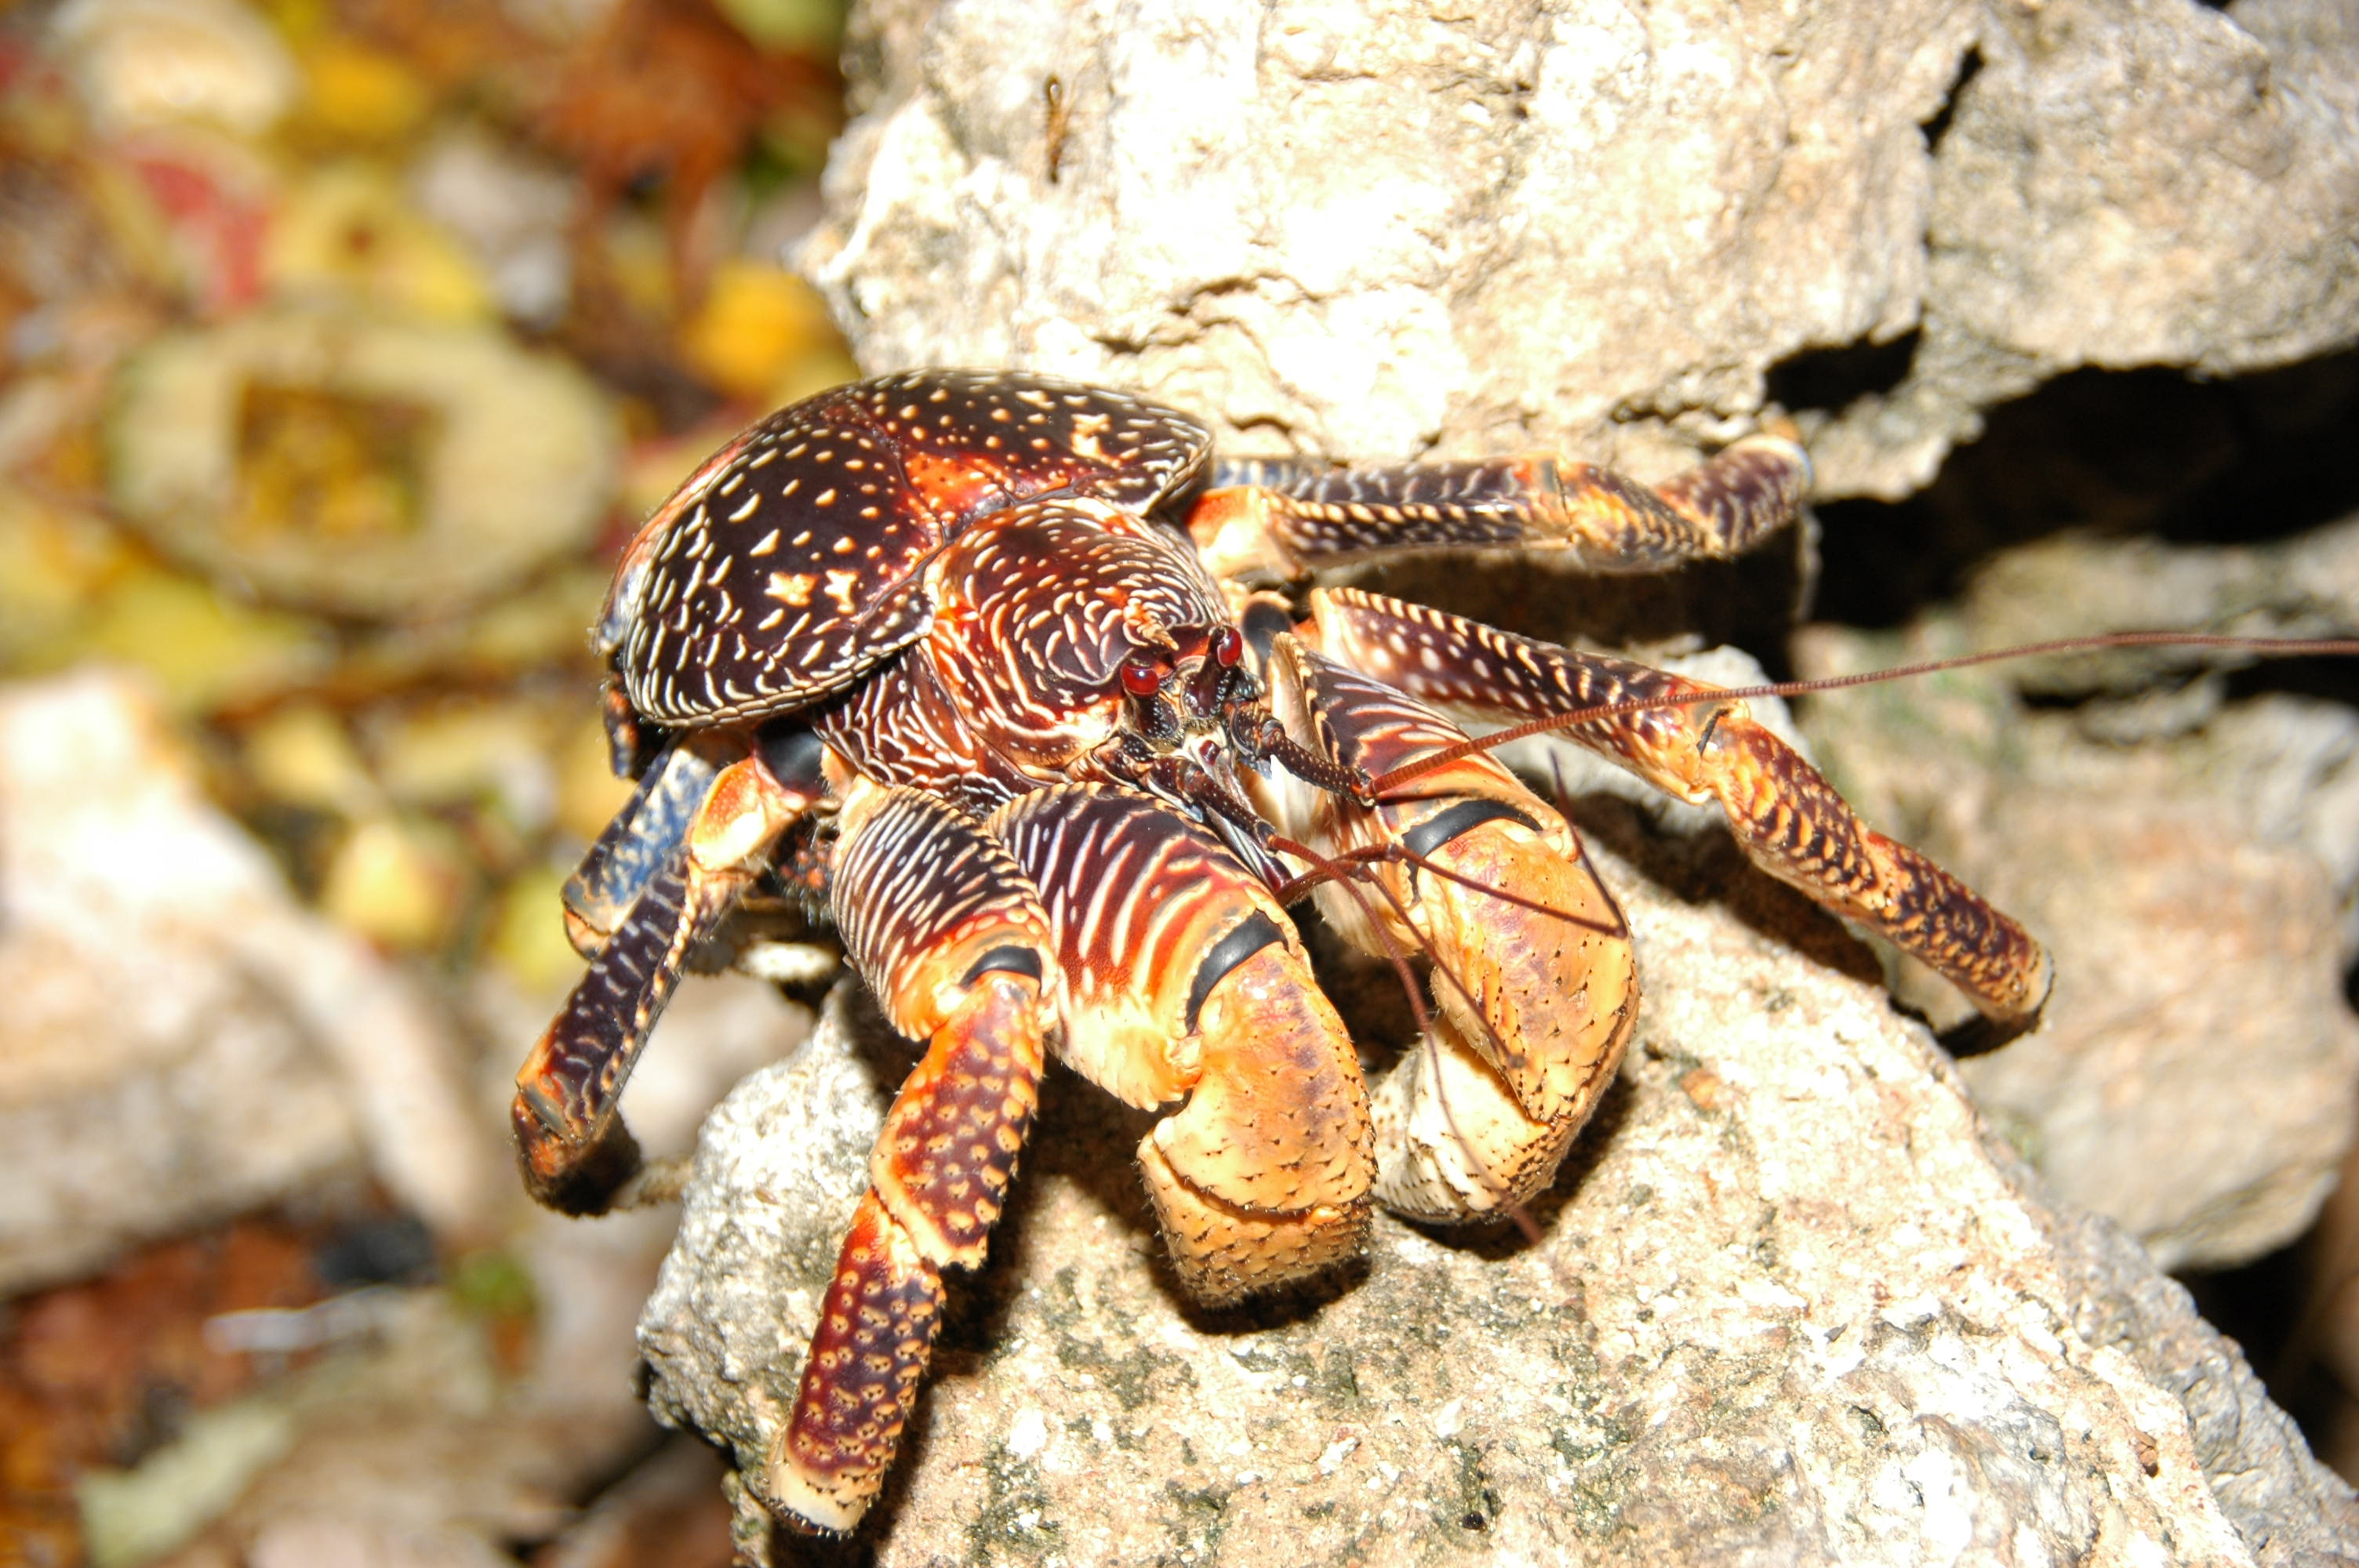 4 Coconut Crab Hd Wallpapers Background Images HD Wallpapers Download Free Images Wallpaper [1000image.com]